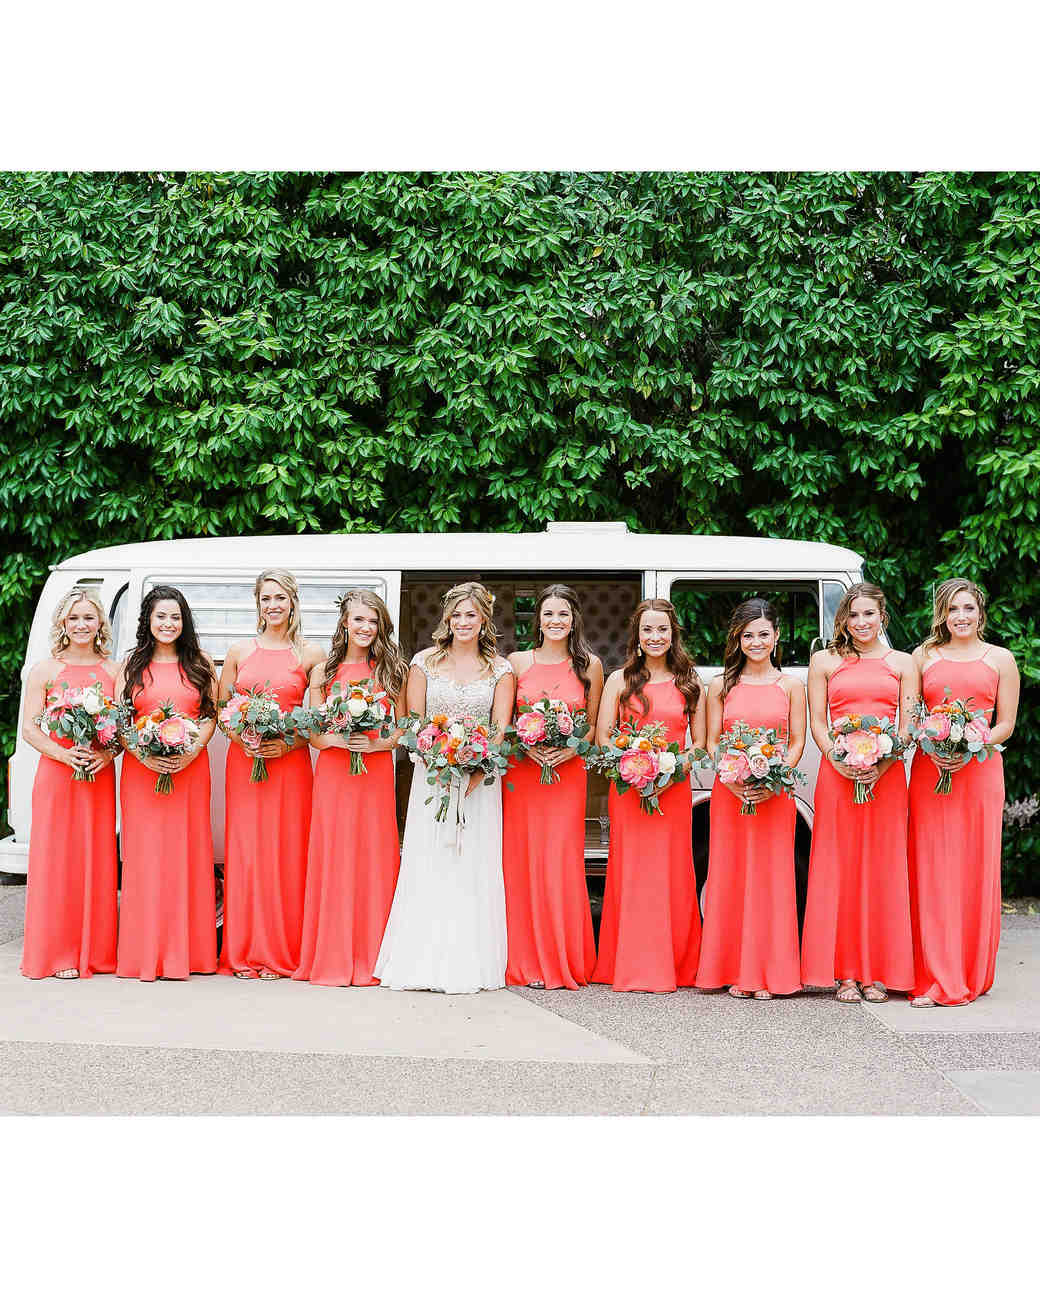 aubrey austin wedding bridesmaids